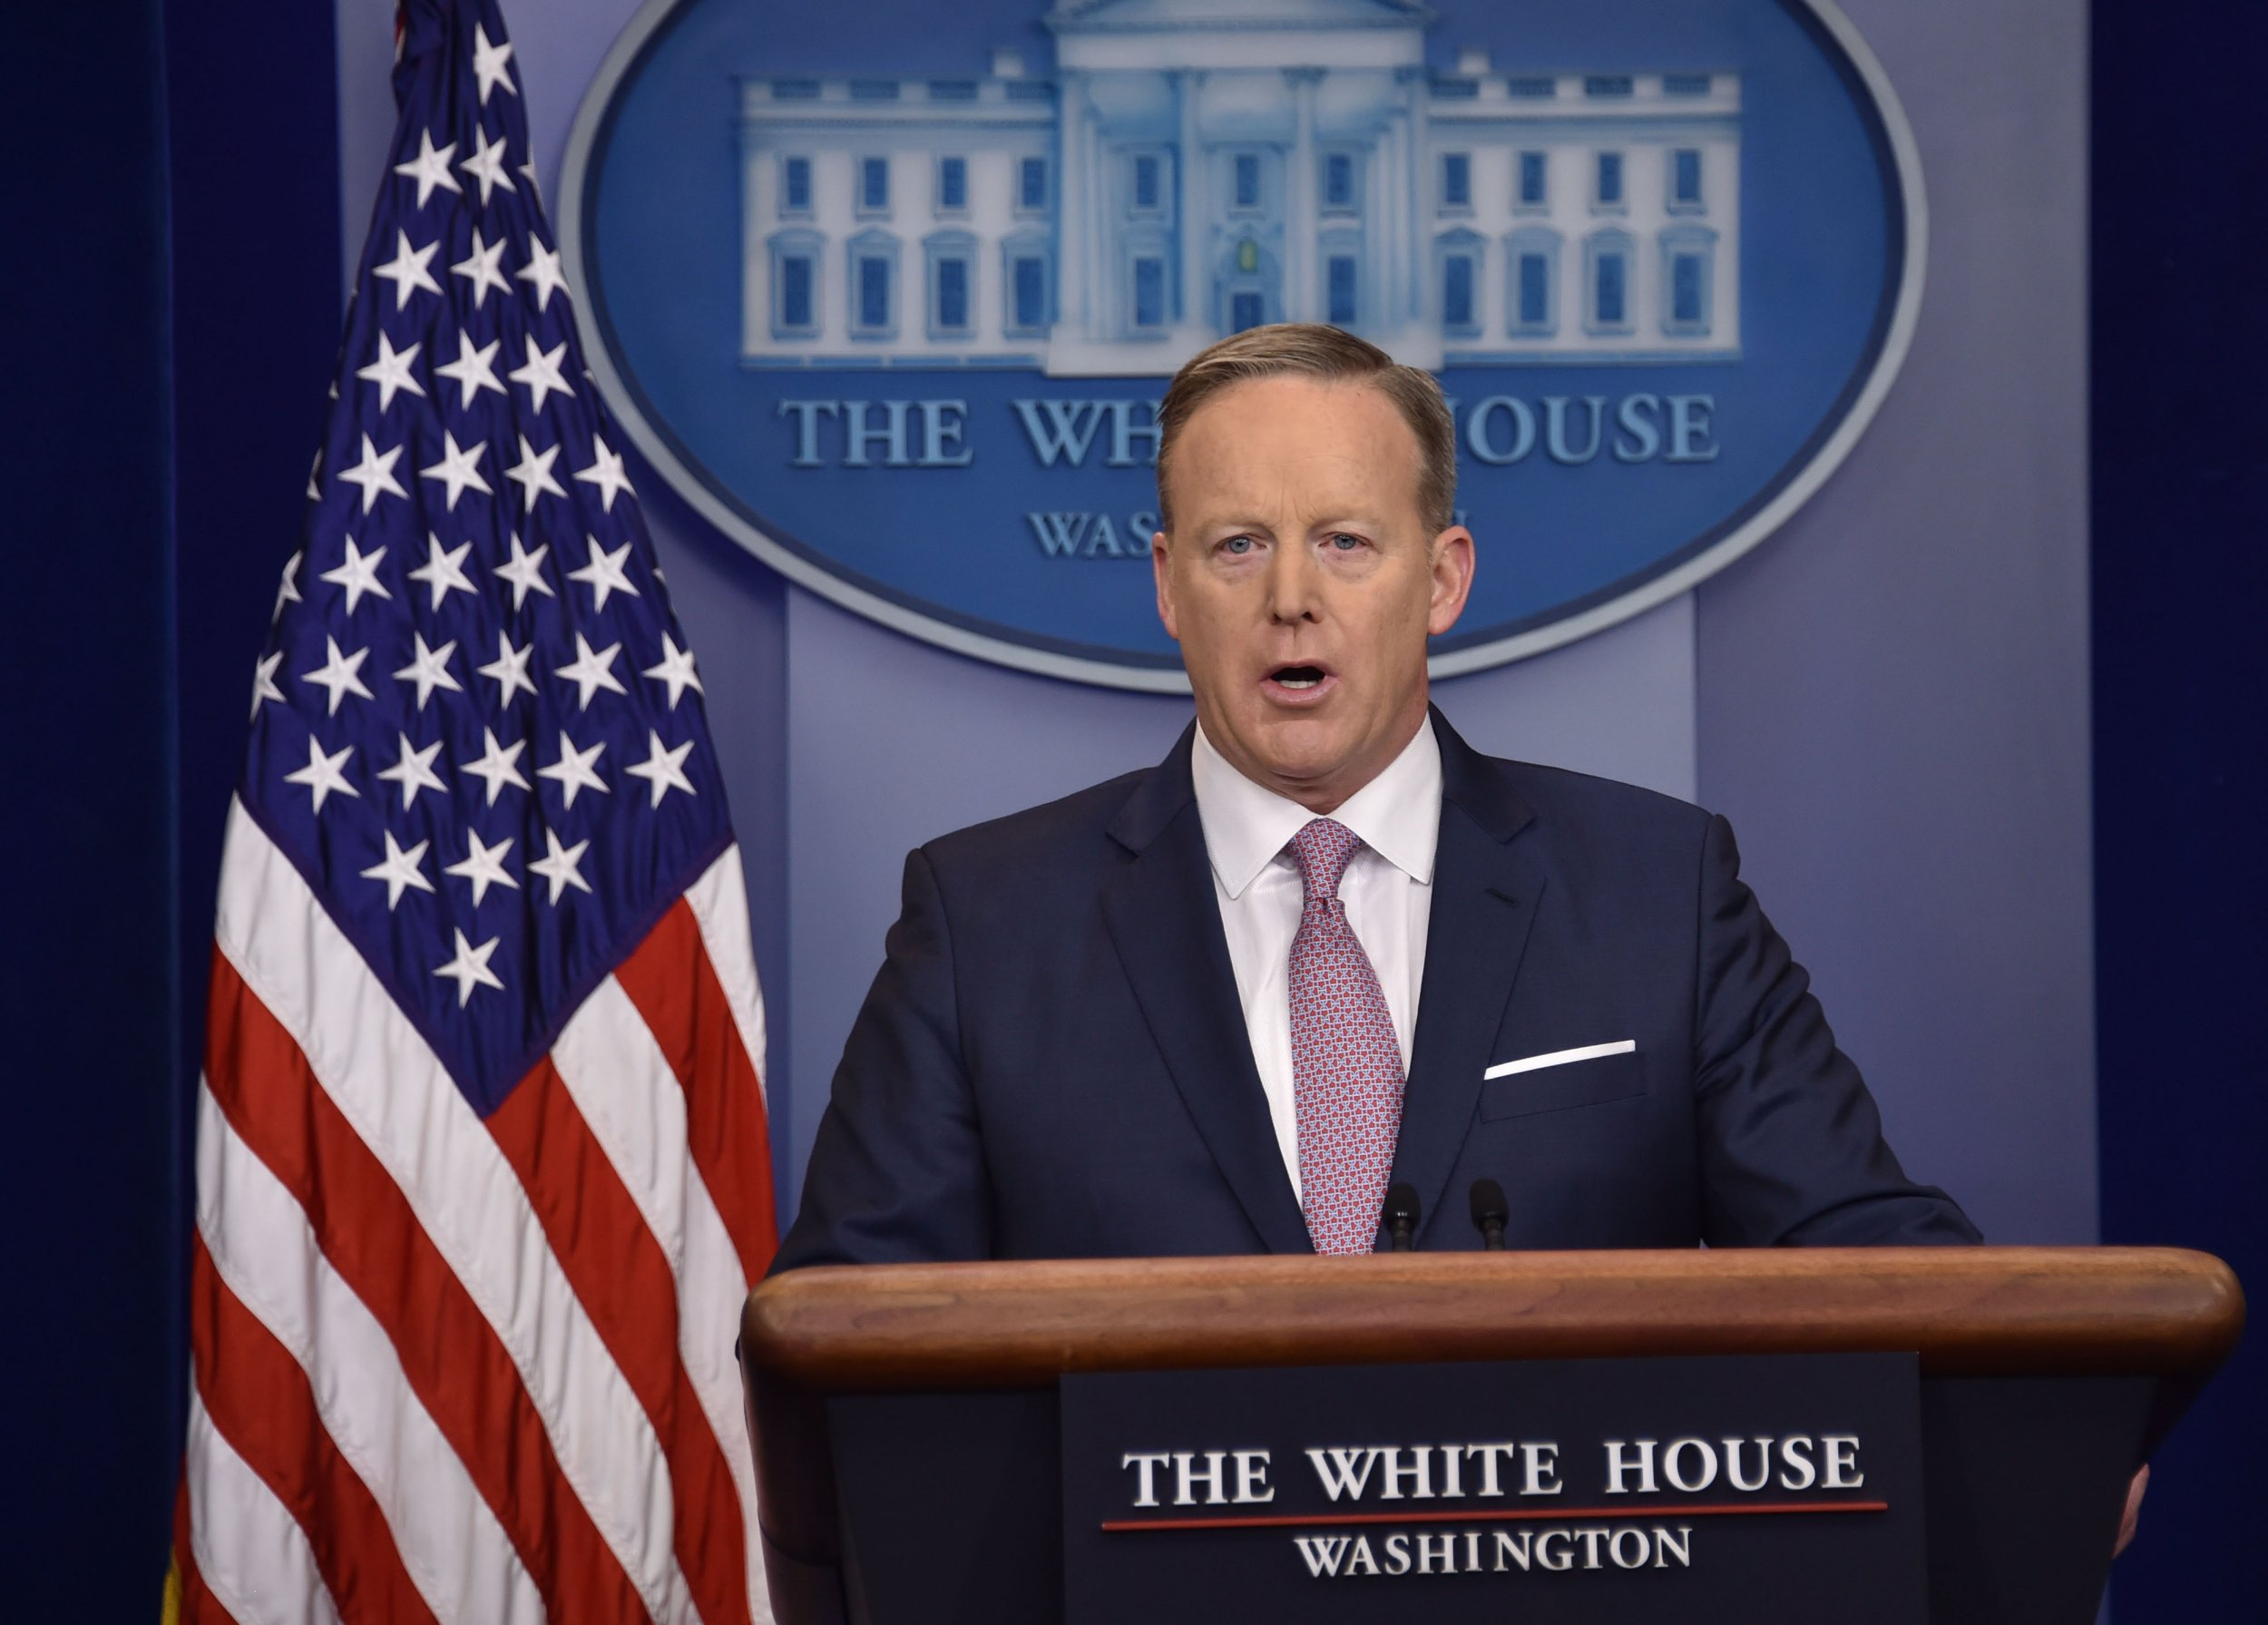 White House Press Secretary Sean Spicer holds the daily press briefing January 23, 2017 at the White House in Washington, DC. / AFP PHOTO / Nicholas KammNICHOLAS KAMM/AFP/Getty Images